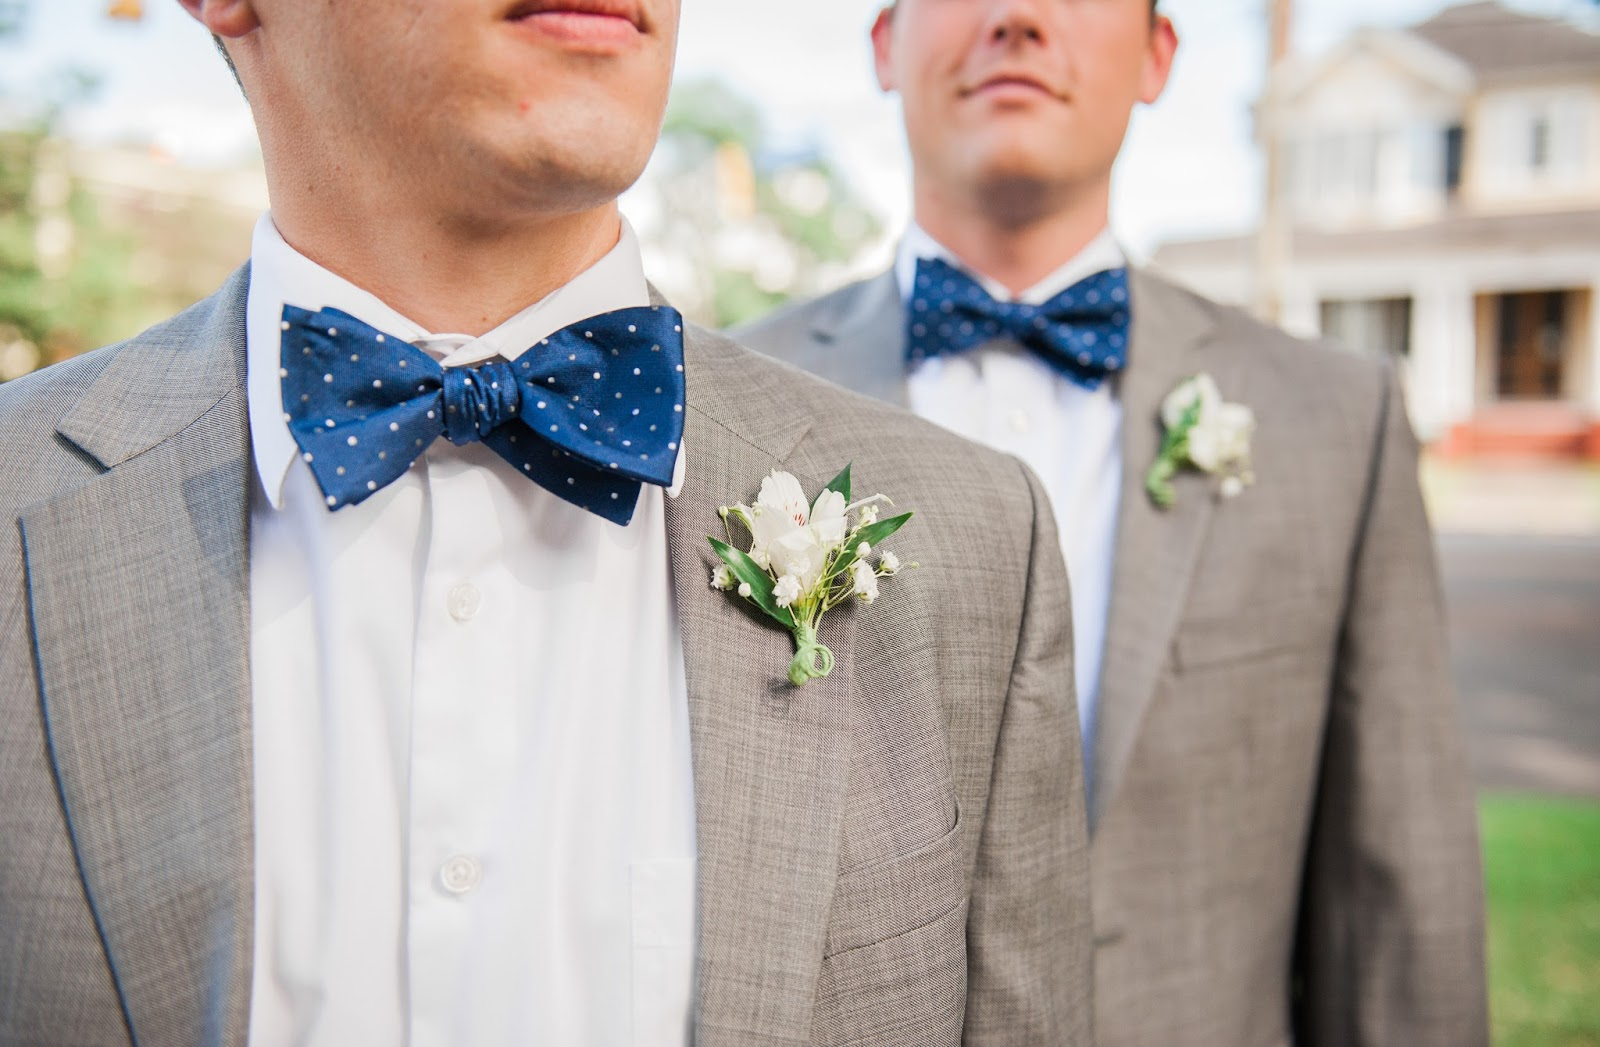 As I've Said Before, I Absolutely Loved The Fact That My Brother Had To  Wear A Polka Dotted Bowtie For Our Wedding But What I Didn't Tell You Is  This: